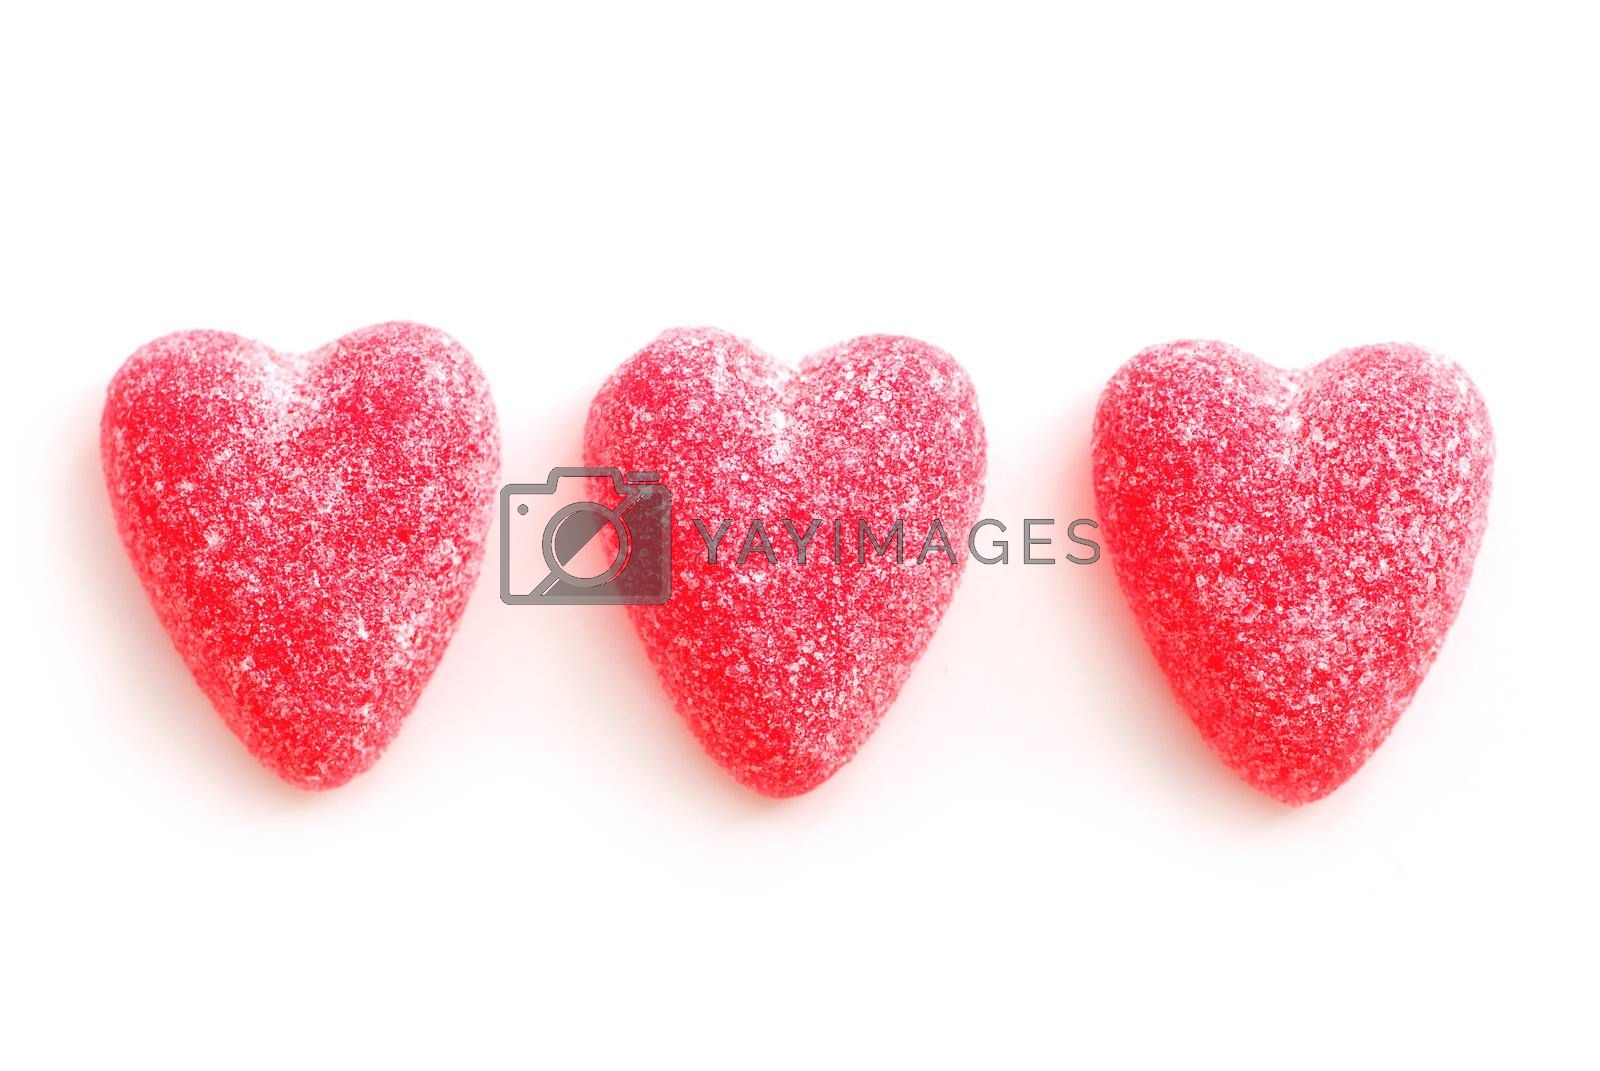 Sugar candy Valentine's hearts isolated on white background